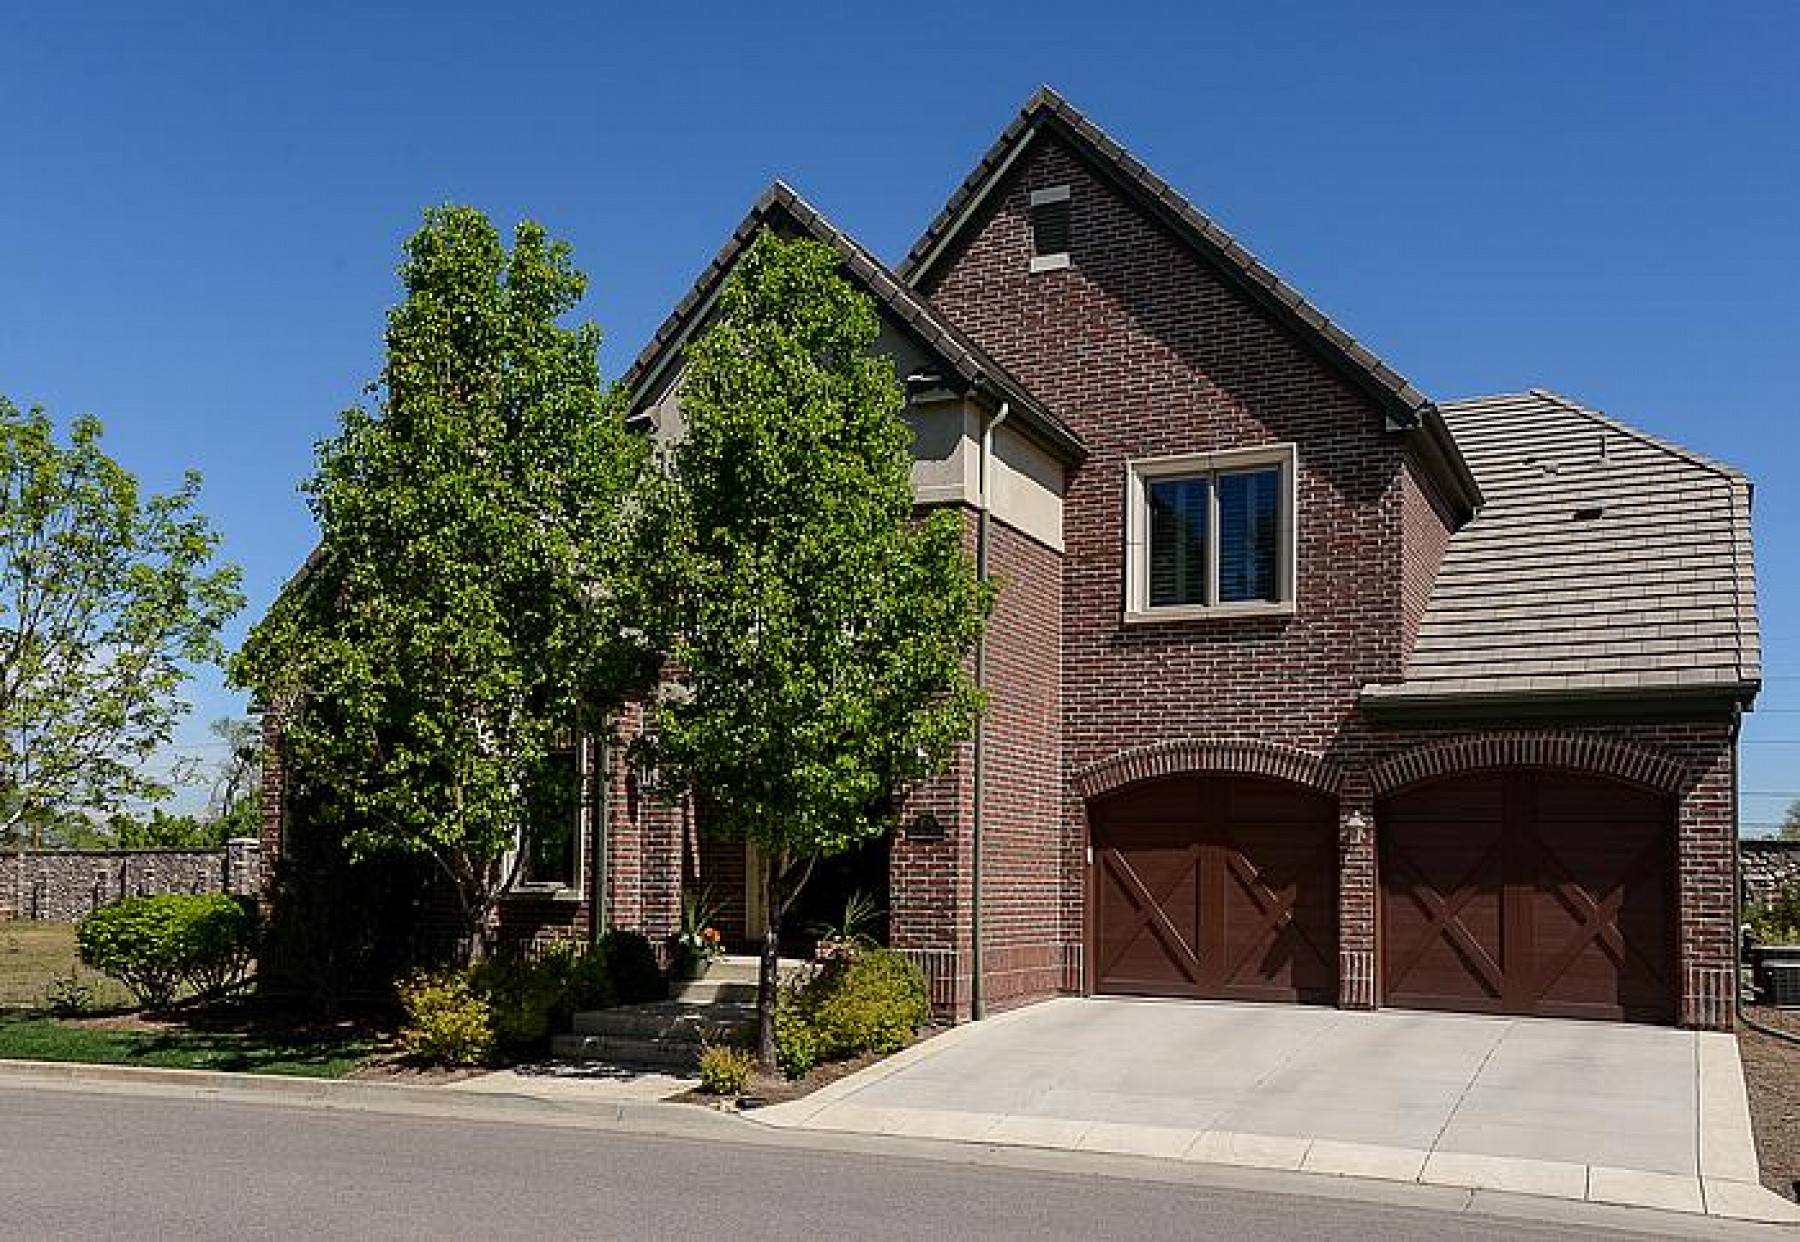 8715 E. Iliff Drive, Denver, CO 80231